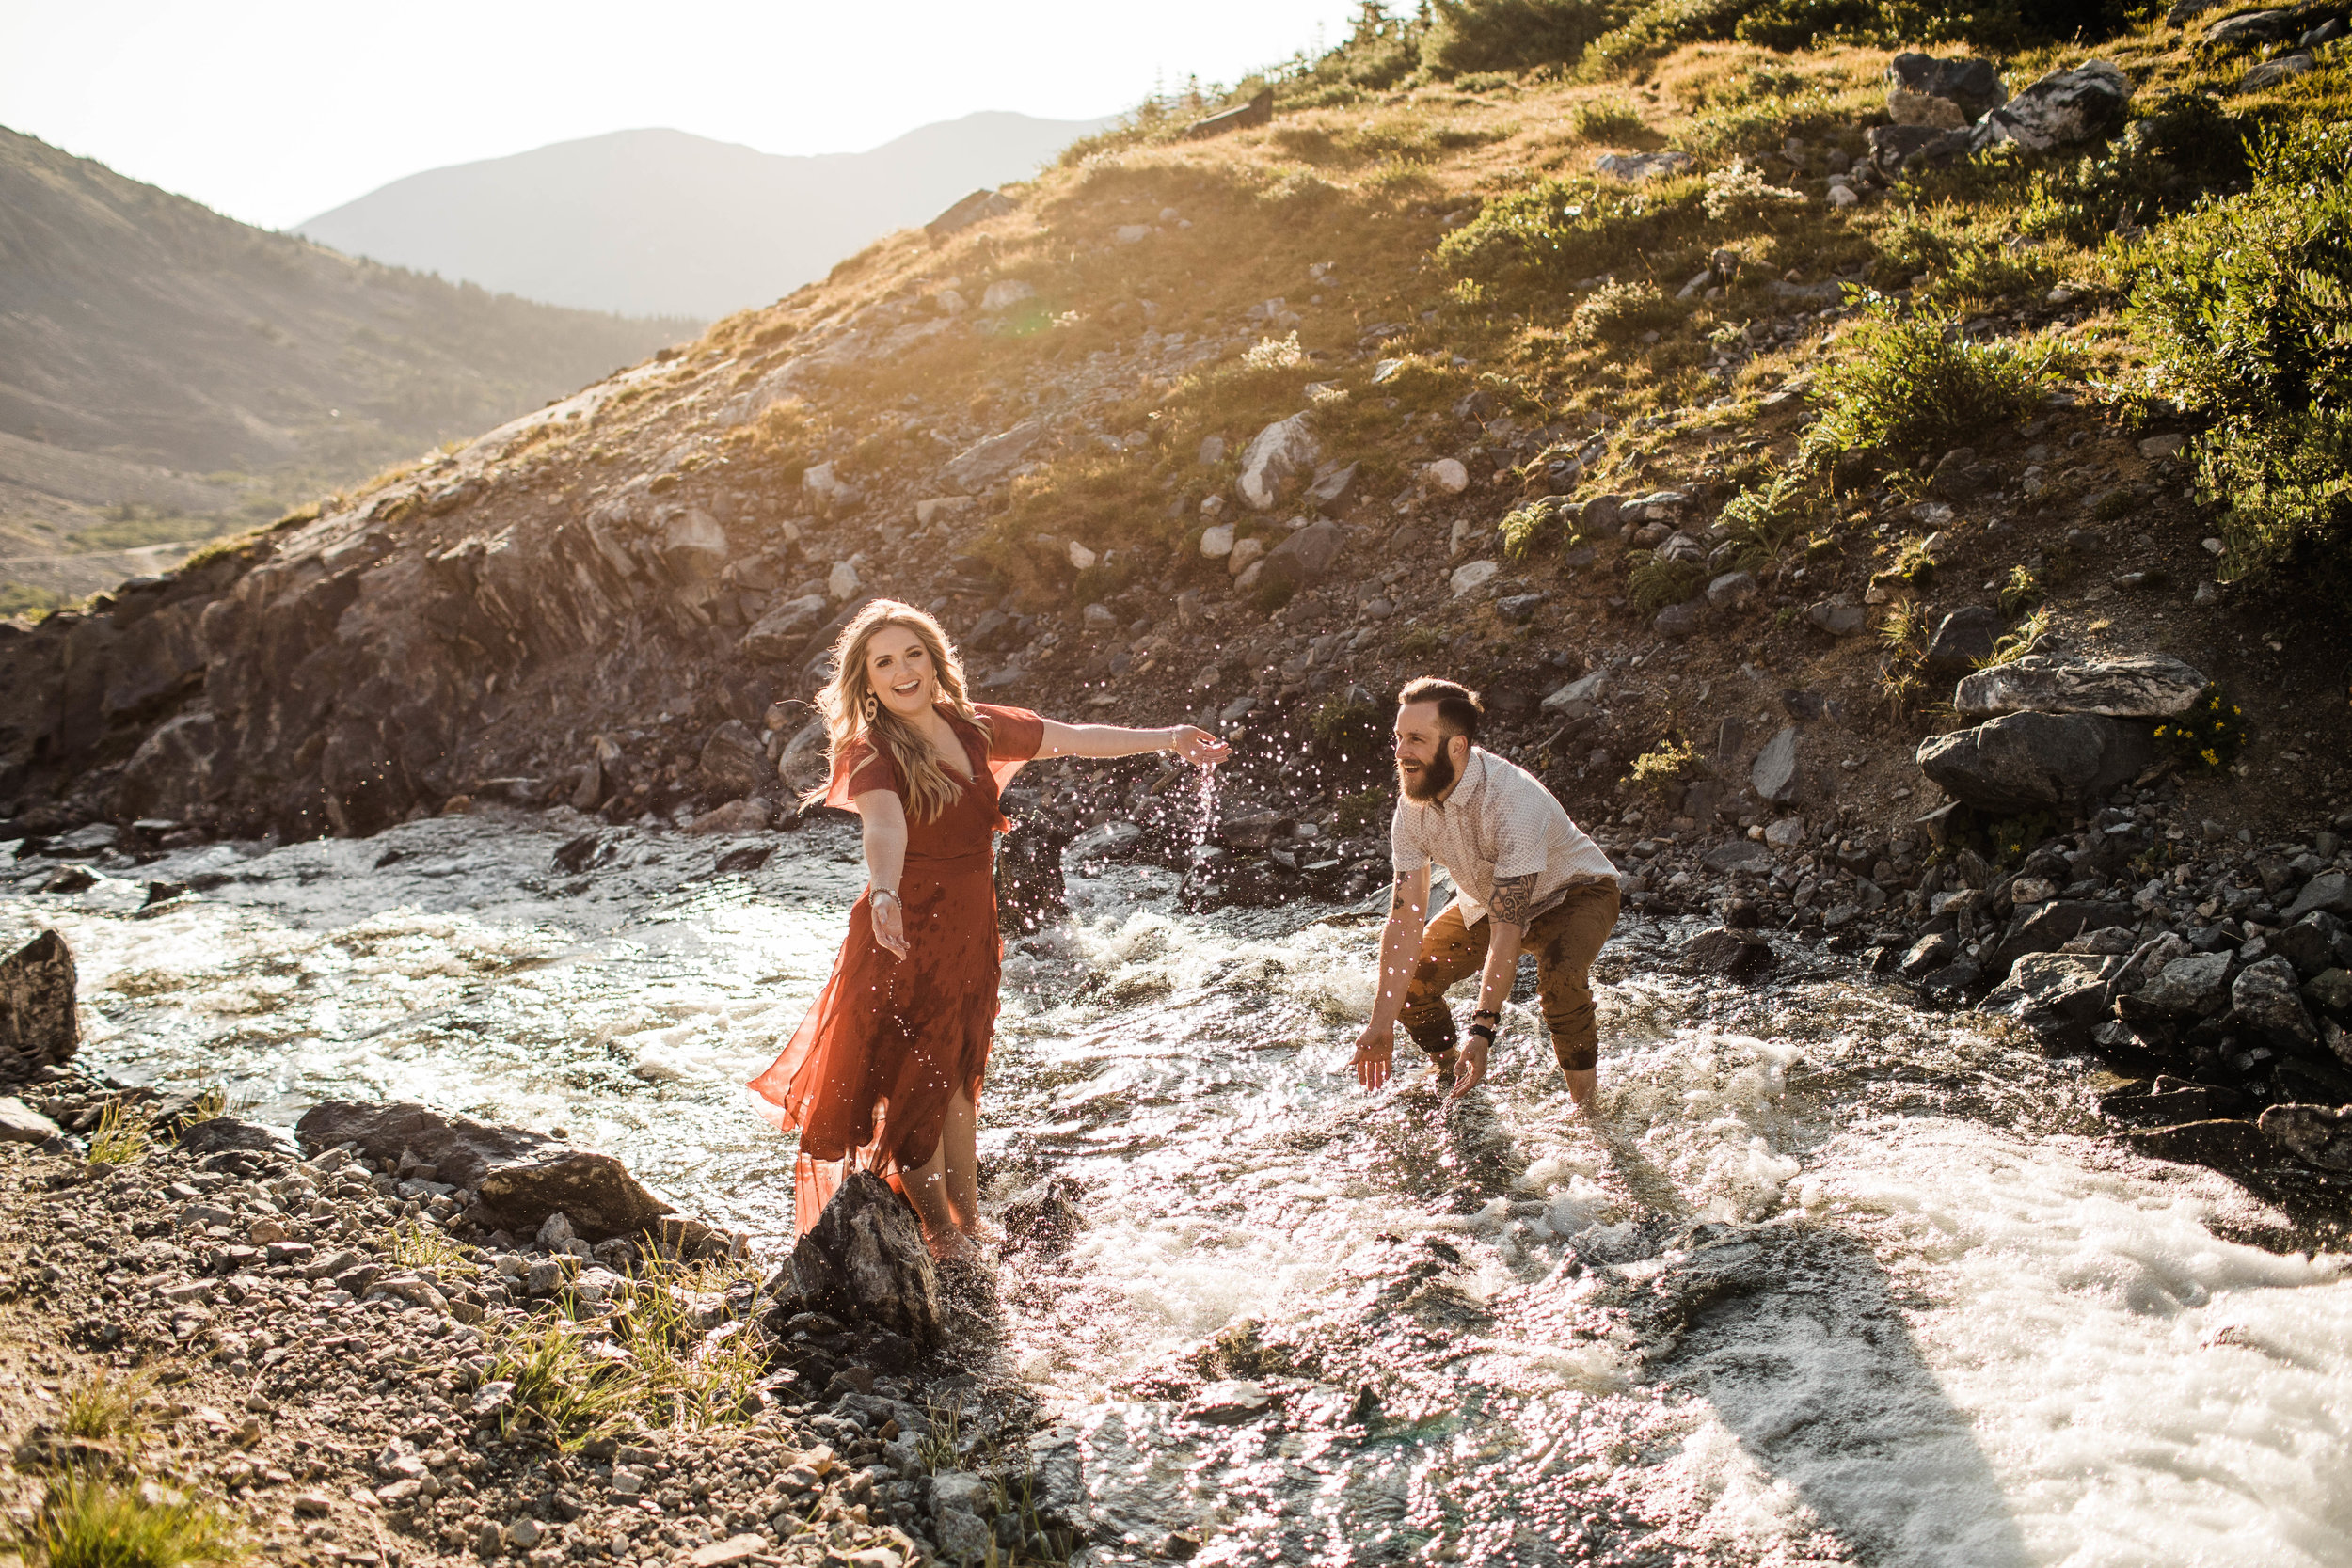 Splashing around in a river during an adventurous engagement session in Breckenridge Colorado